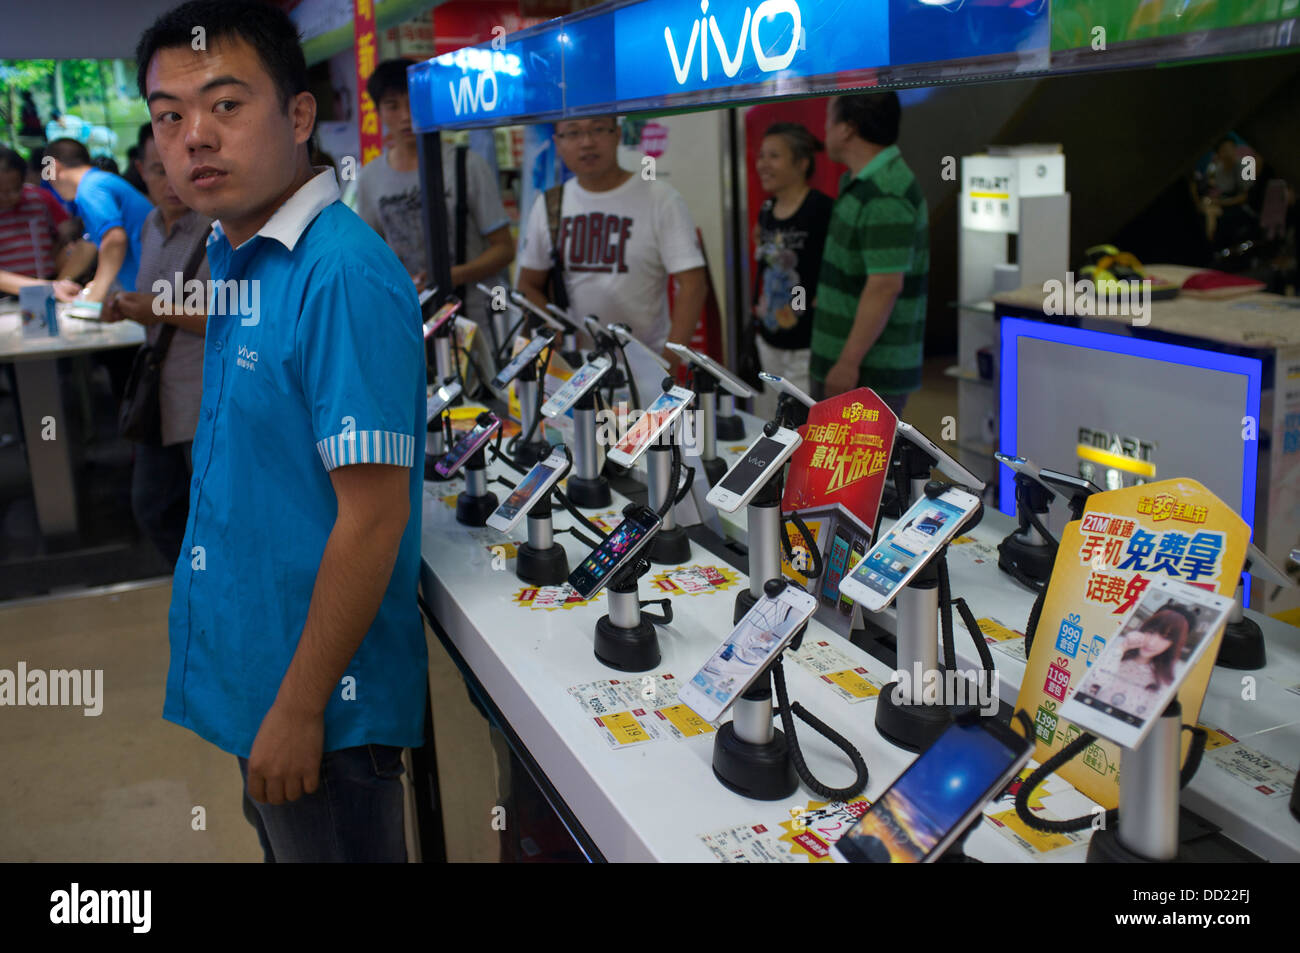 Vivo cell phones are on sale in a store in Beijing, China. 2013 - Stock Image